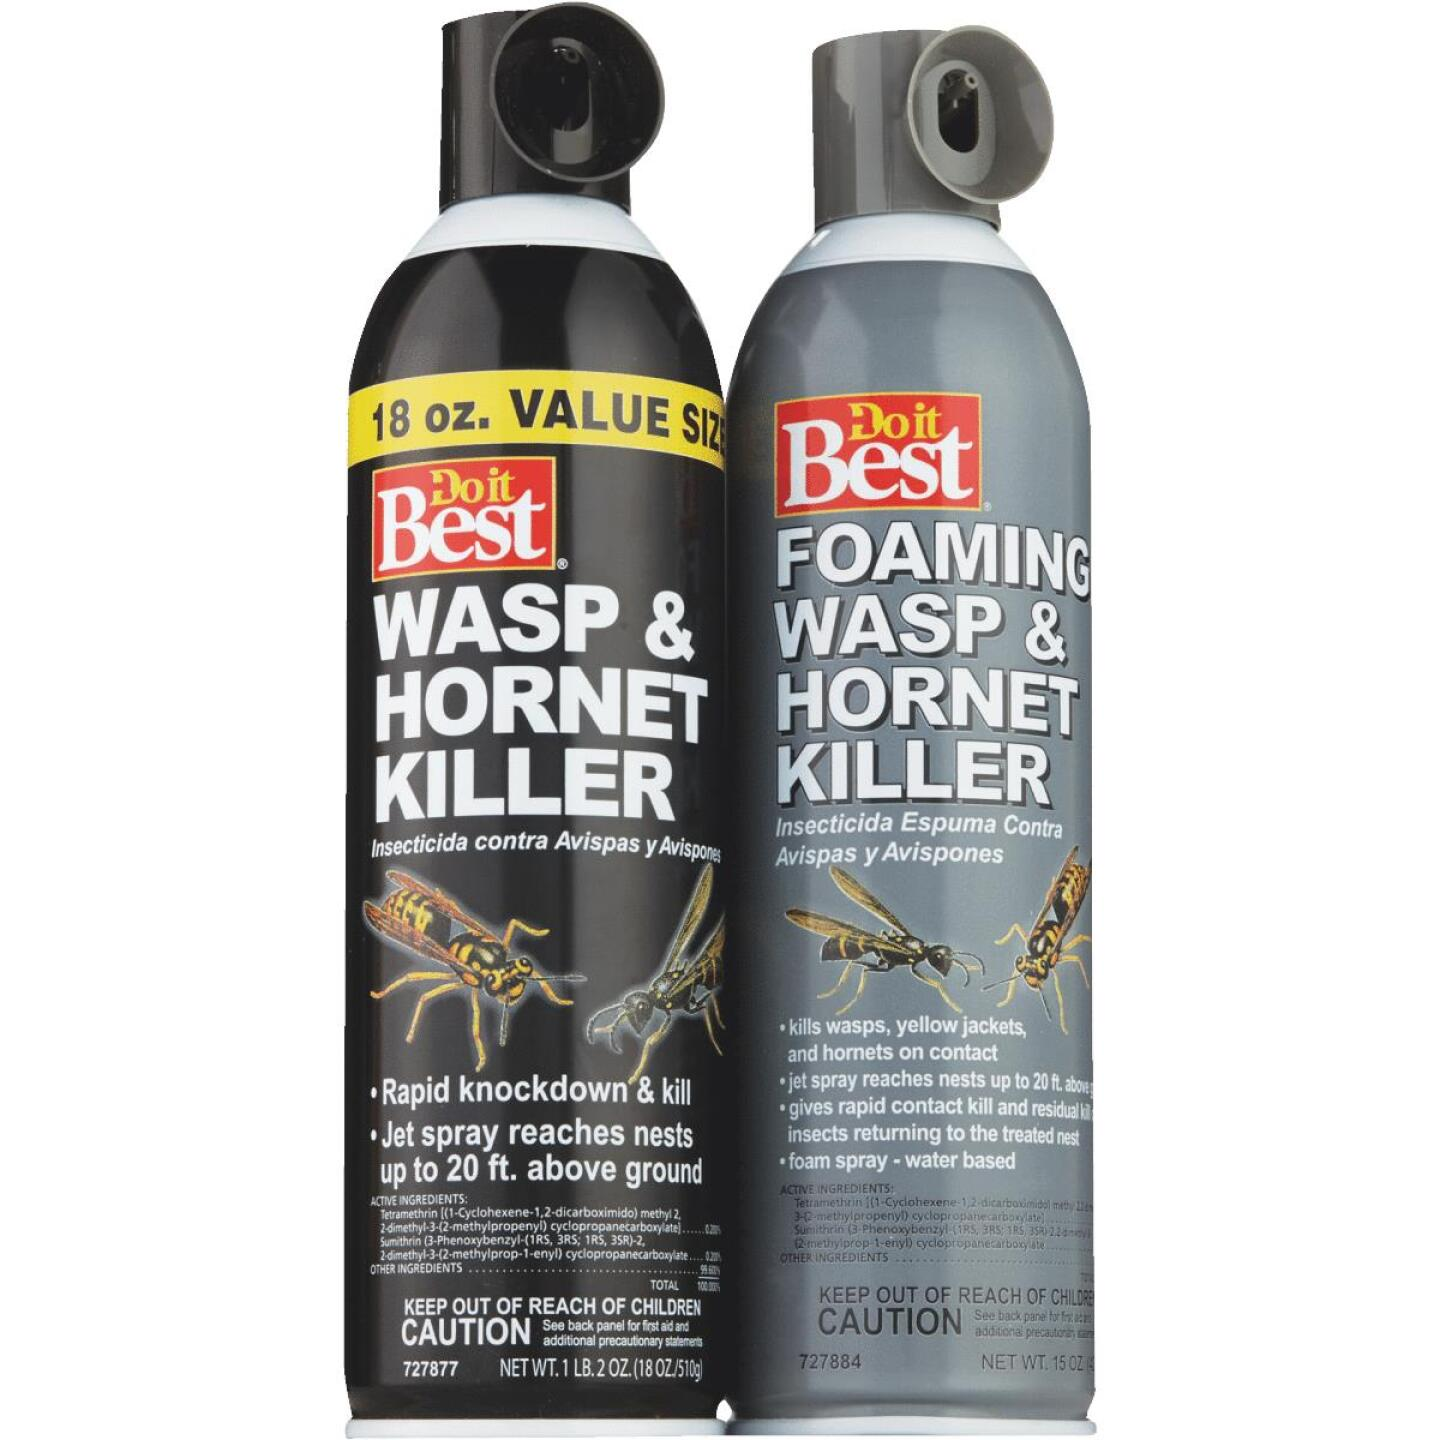 Do it Best 15 Oz. Foaming Aerosol Spray Wasp & Hornet Killer Image 4